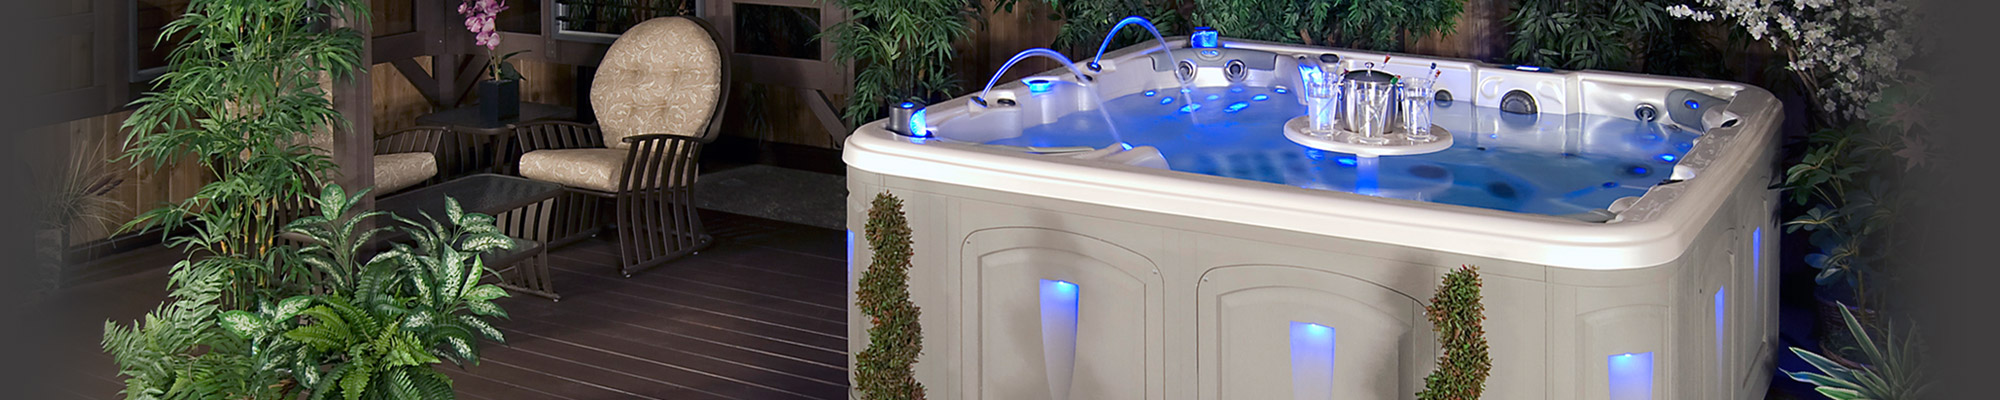 Relax in a quality Clearwater Hot Tub